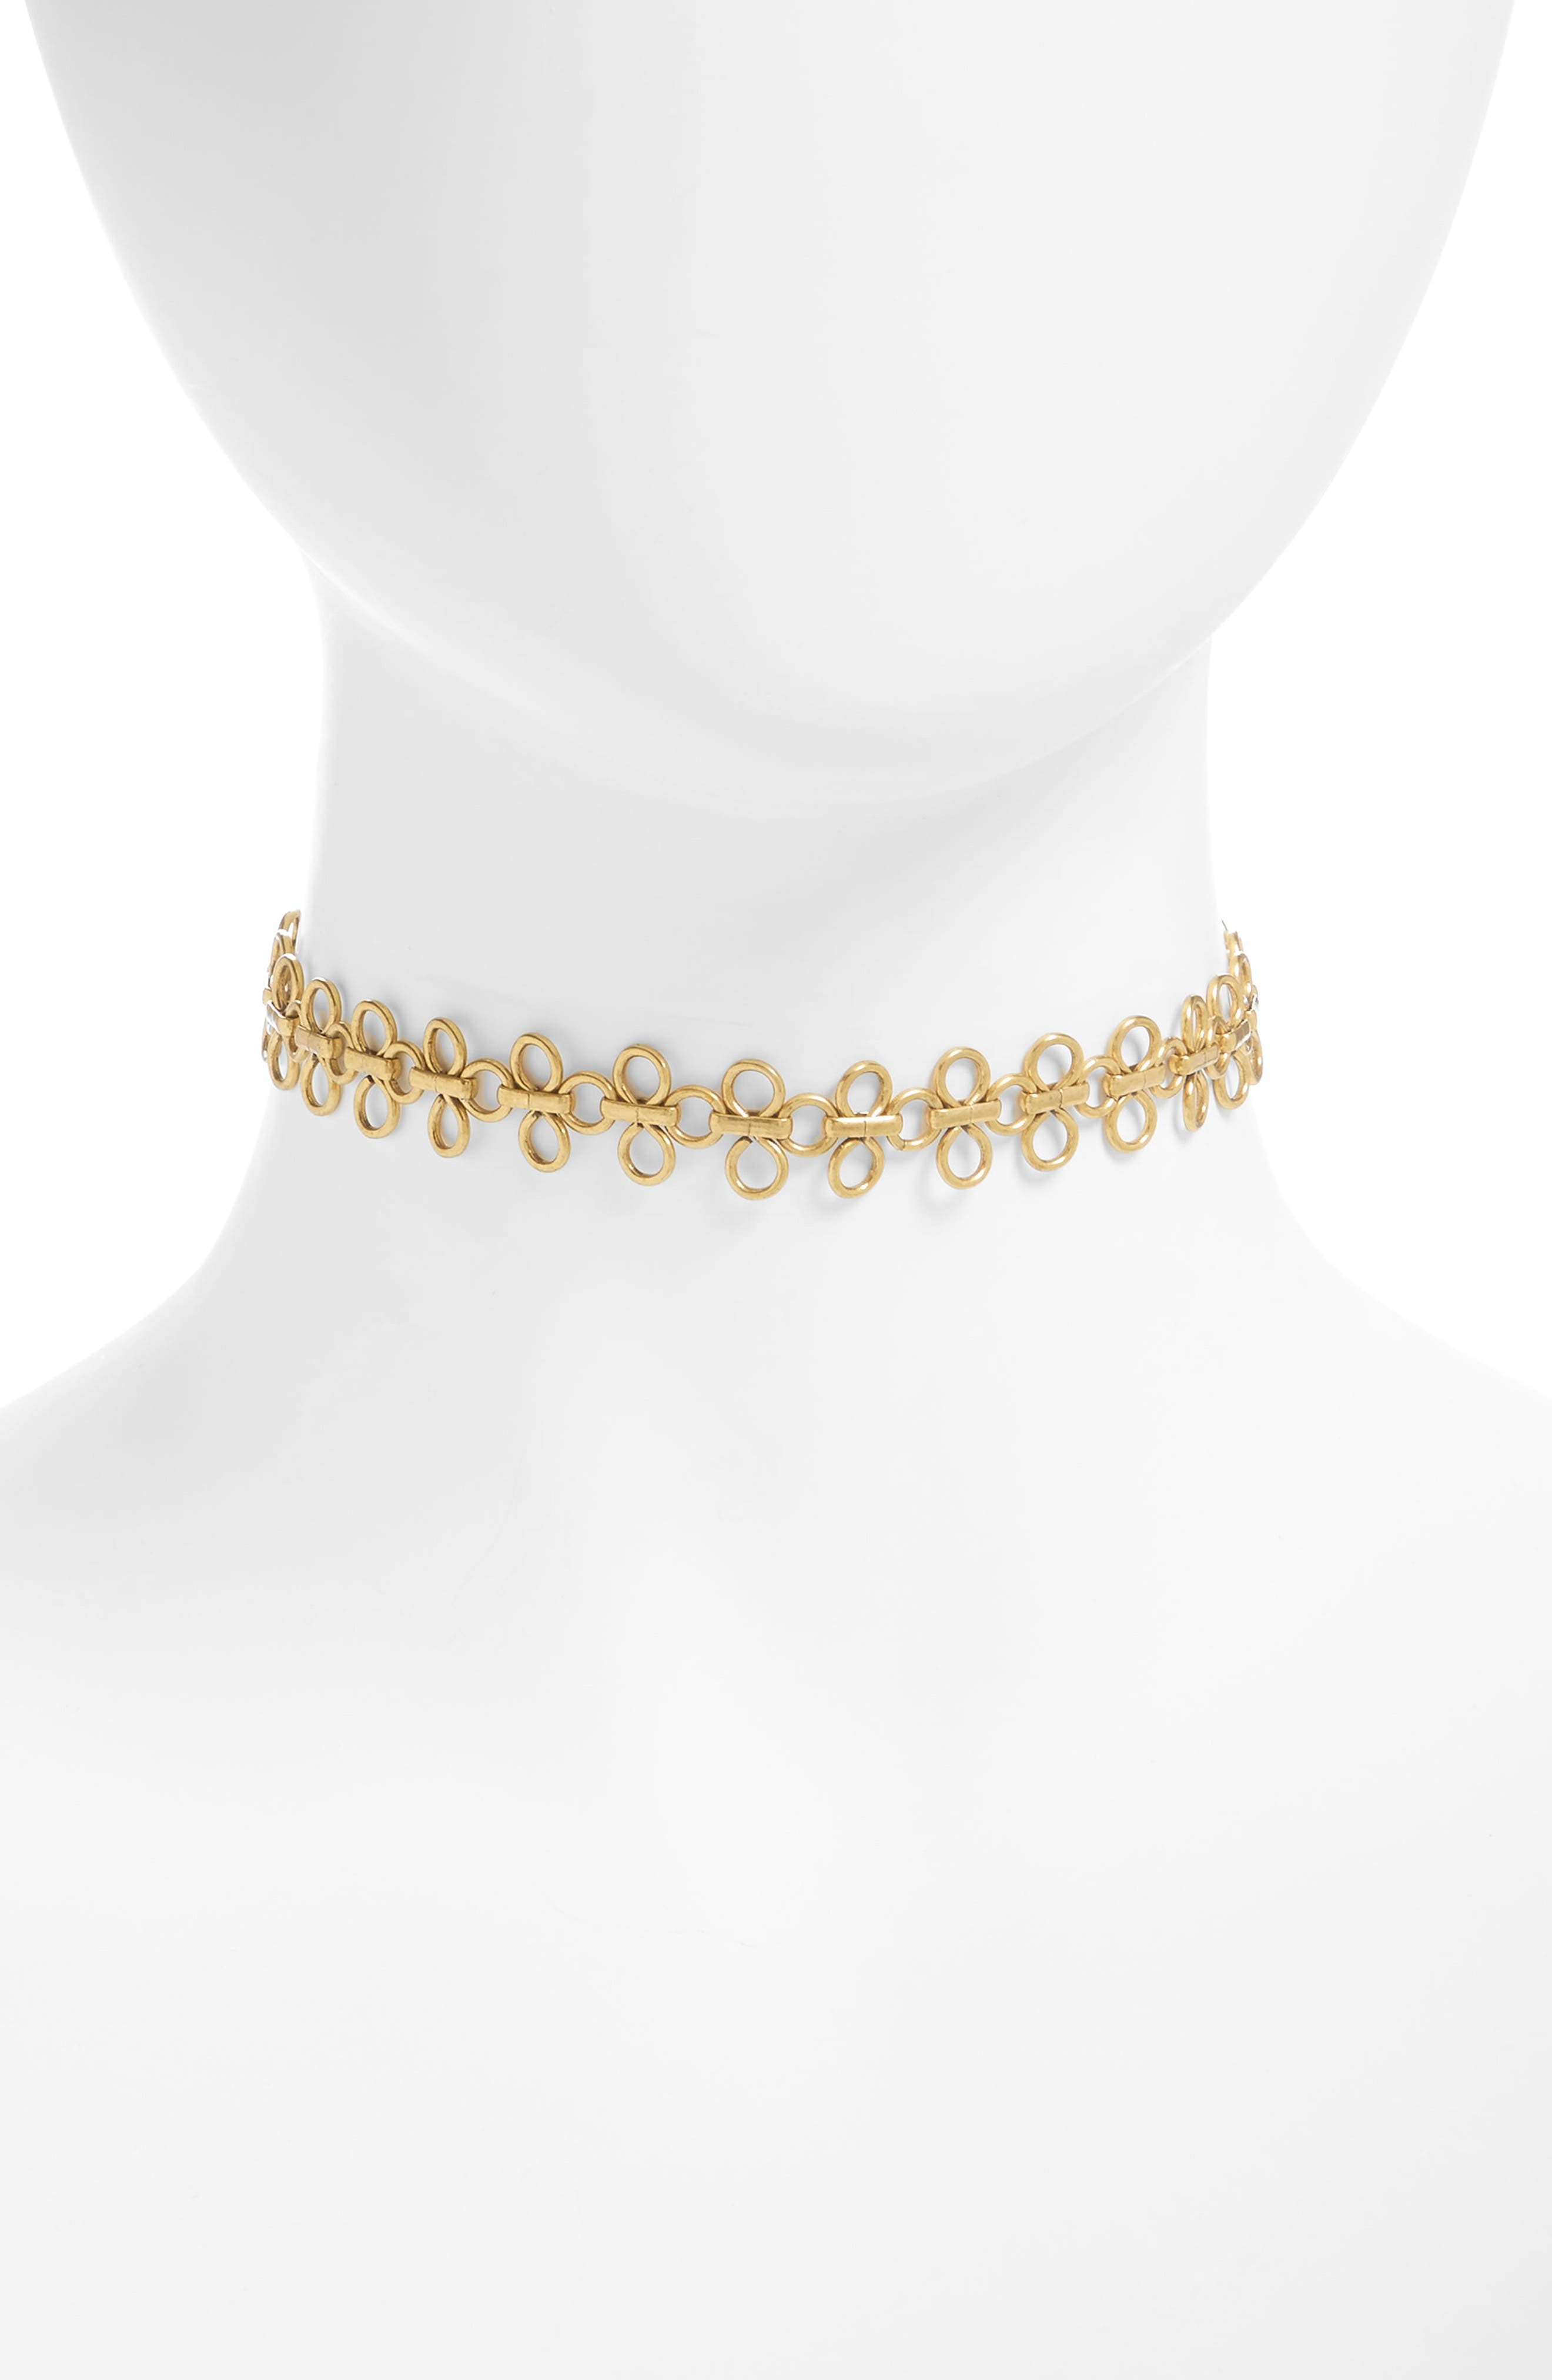 LUV AJ Lace Link Choker Necklace